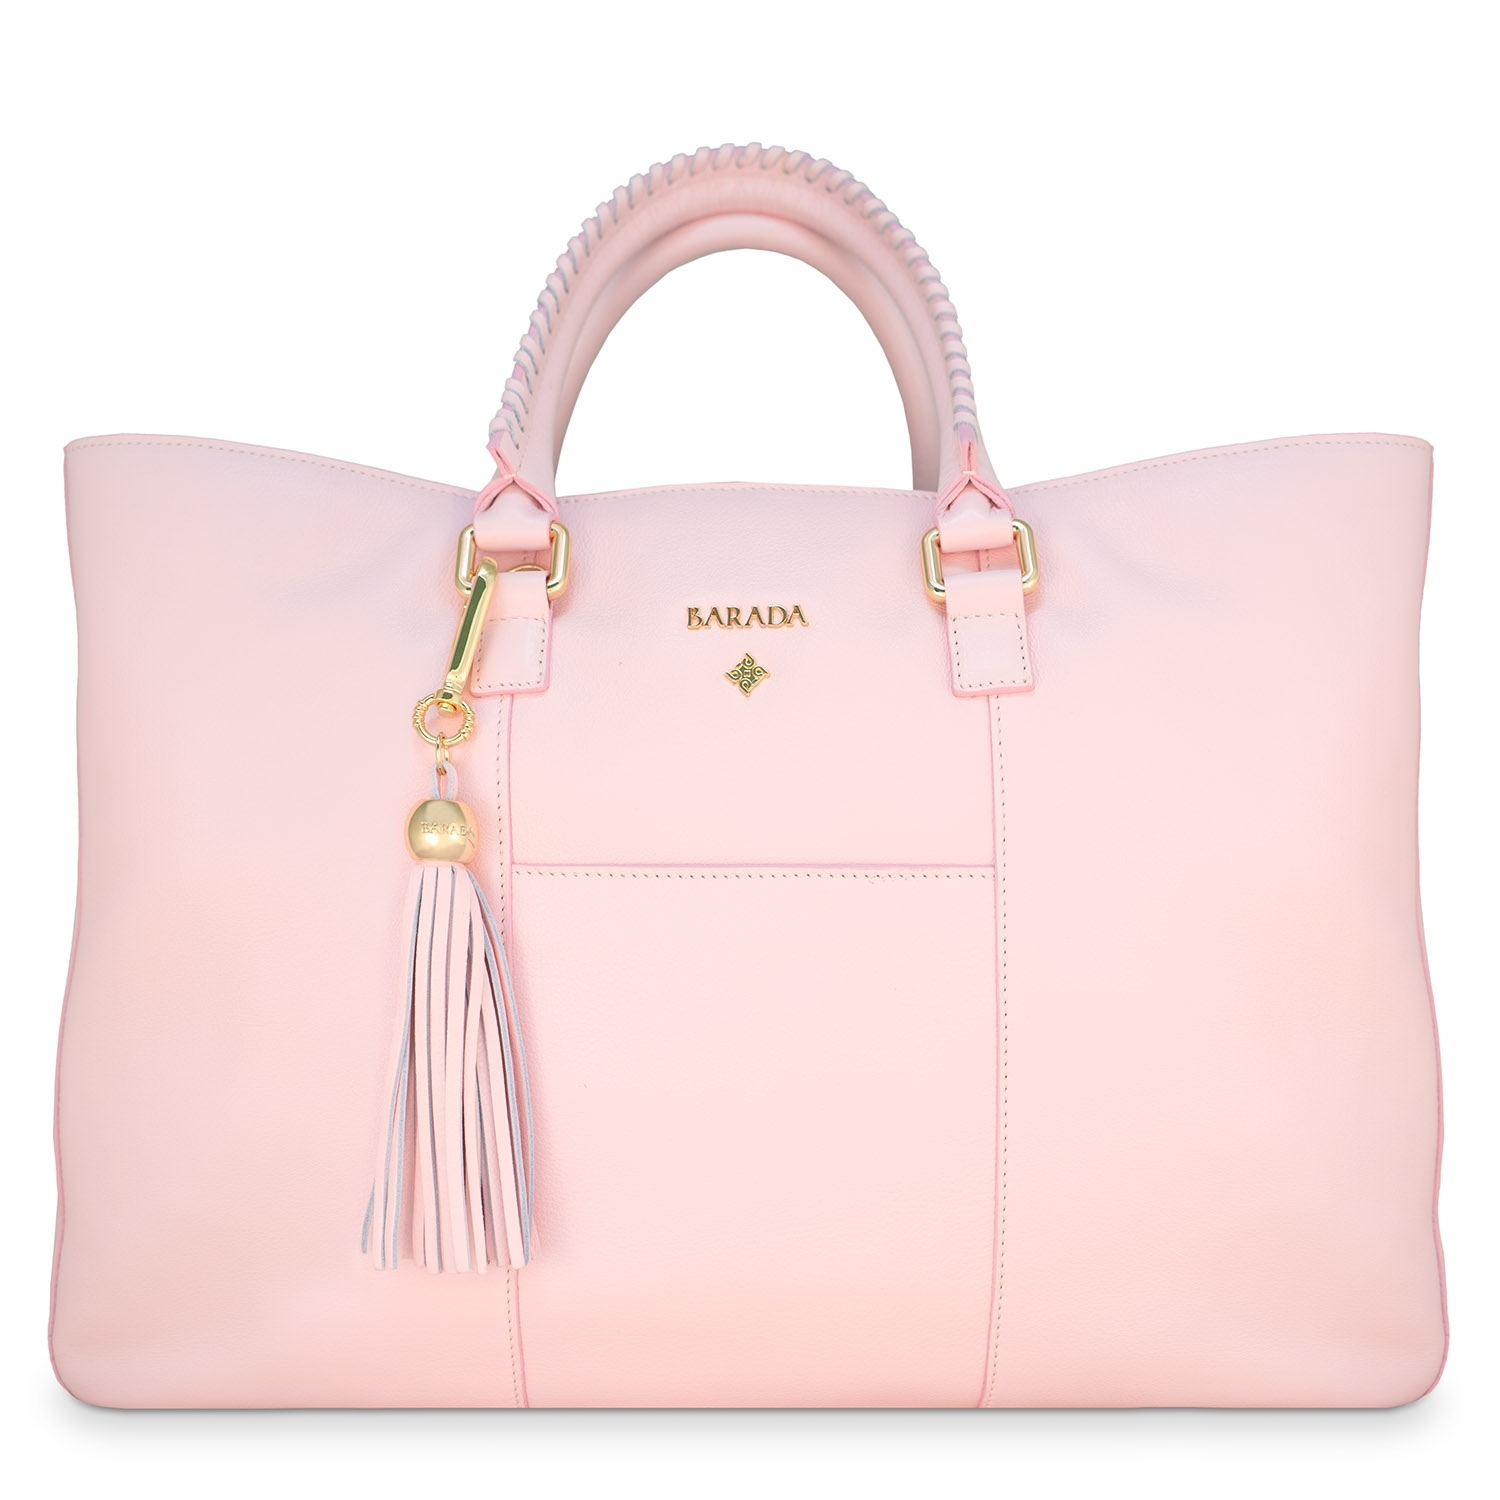 Shopping Handbag From Our Moira Collection In Calf Leather Antelope